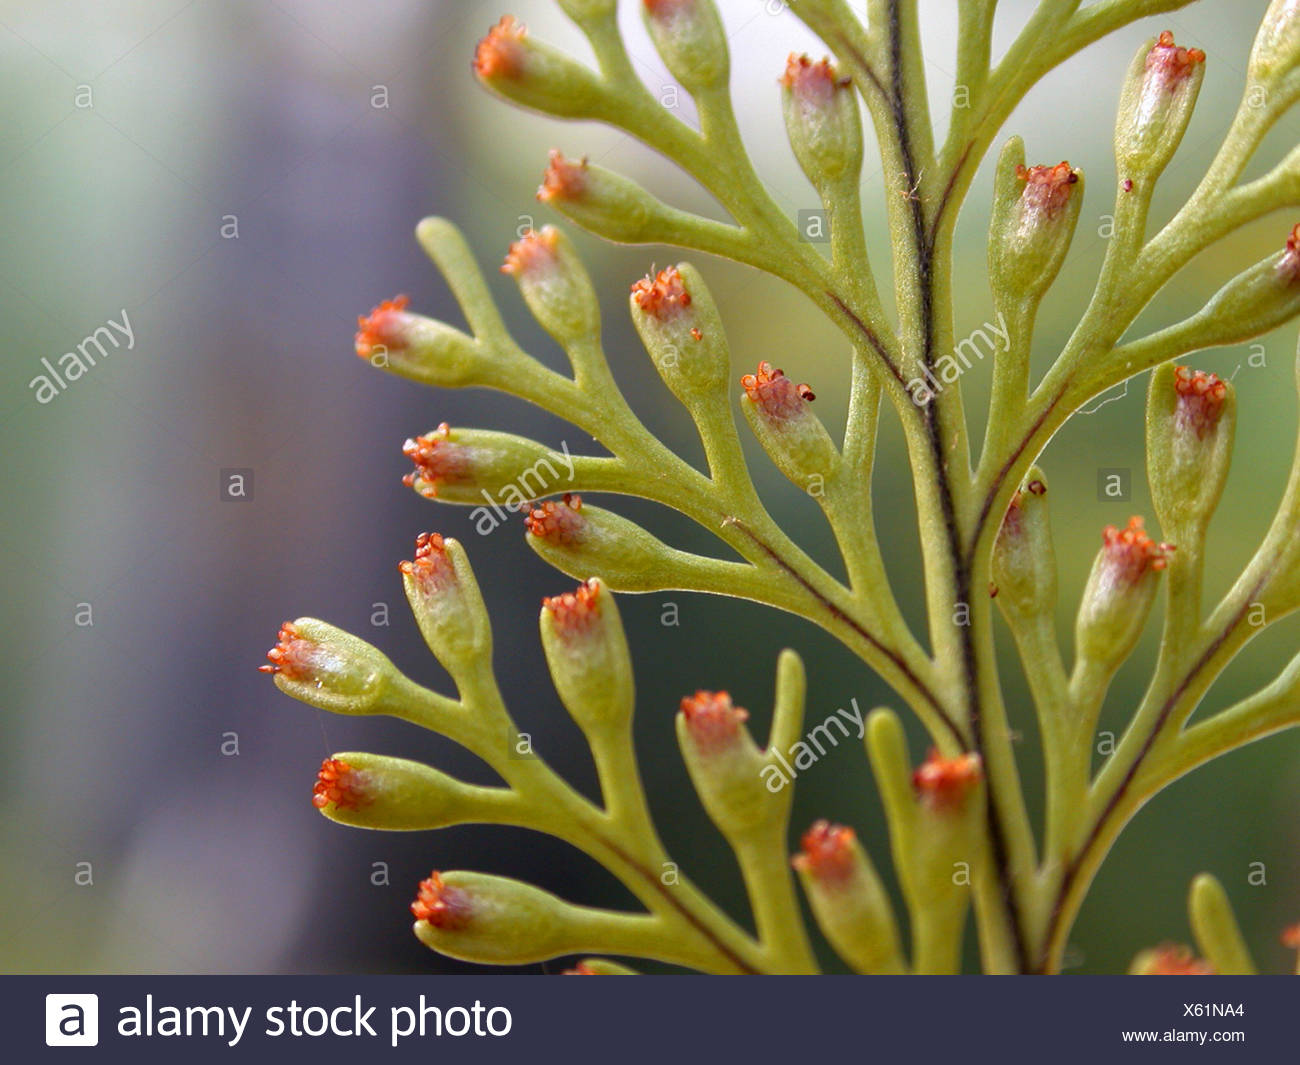 Rabbit's Foot Fern (Davallia fejeensis), detail of a frond with sori - Stock Image